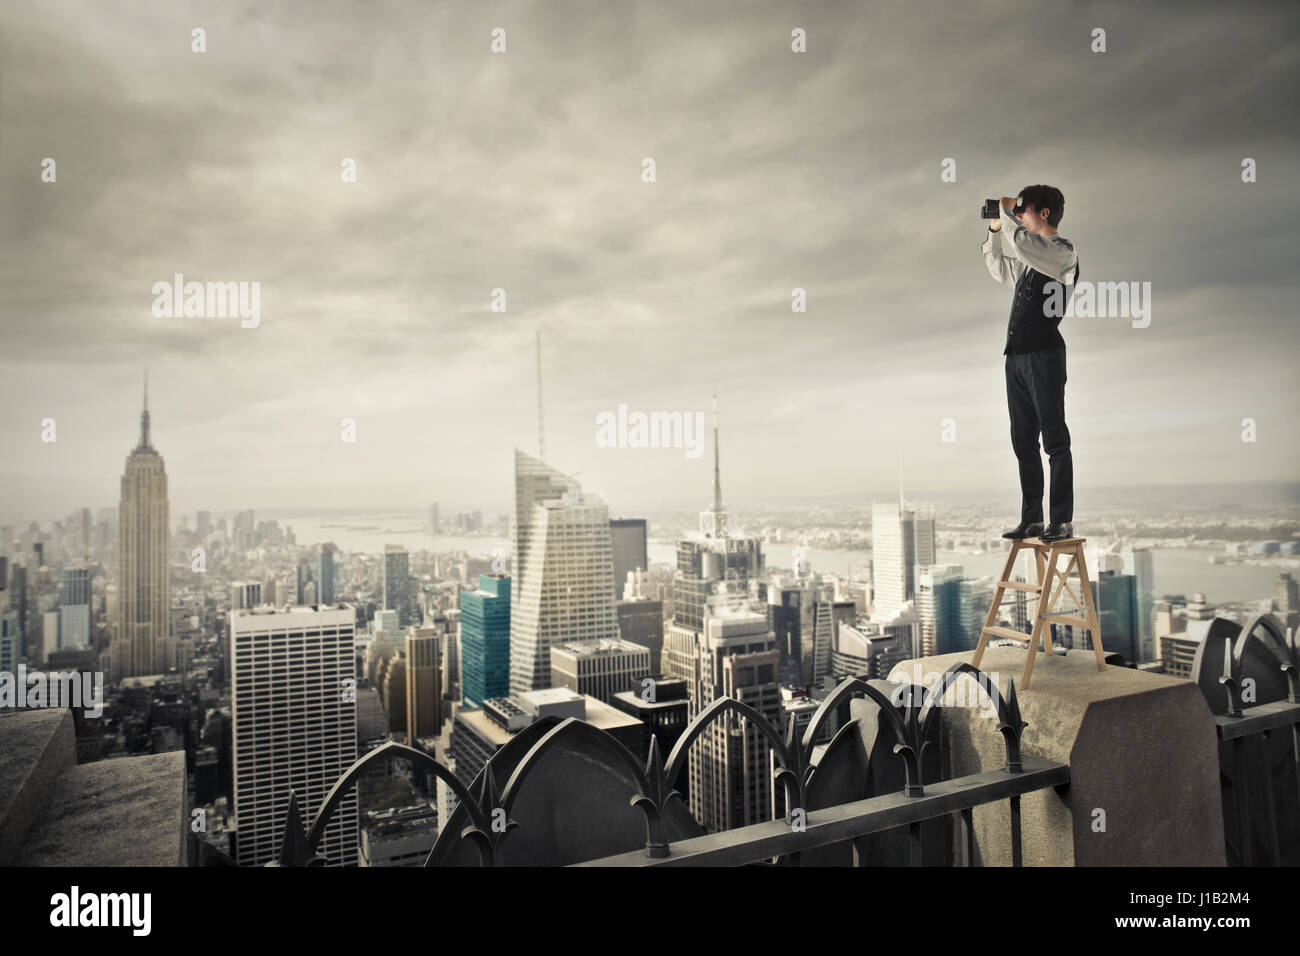 Businessman with telescope looking at the city - Stock Image